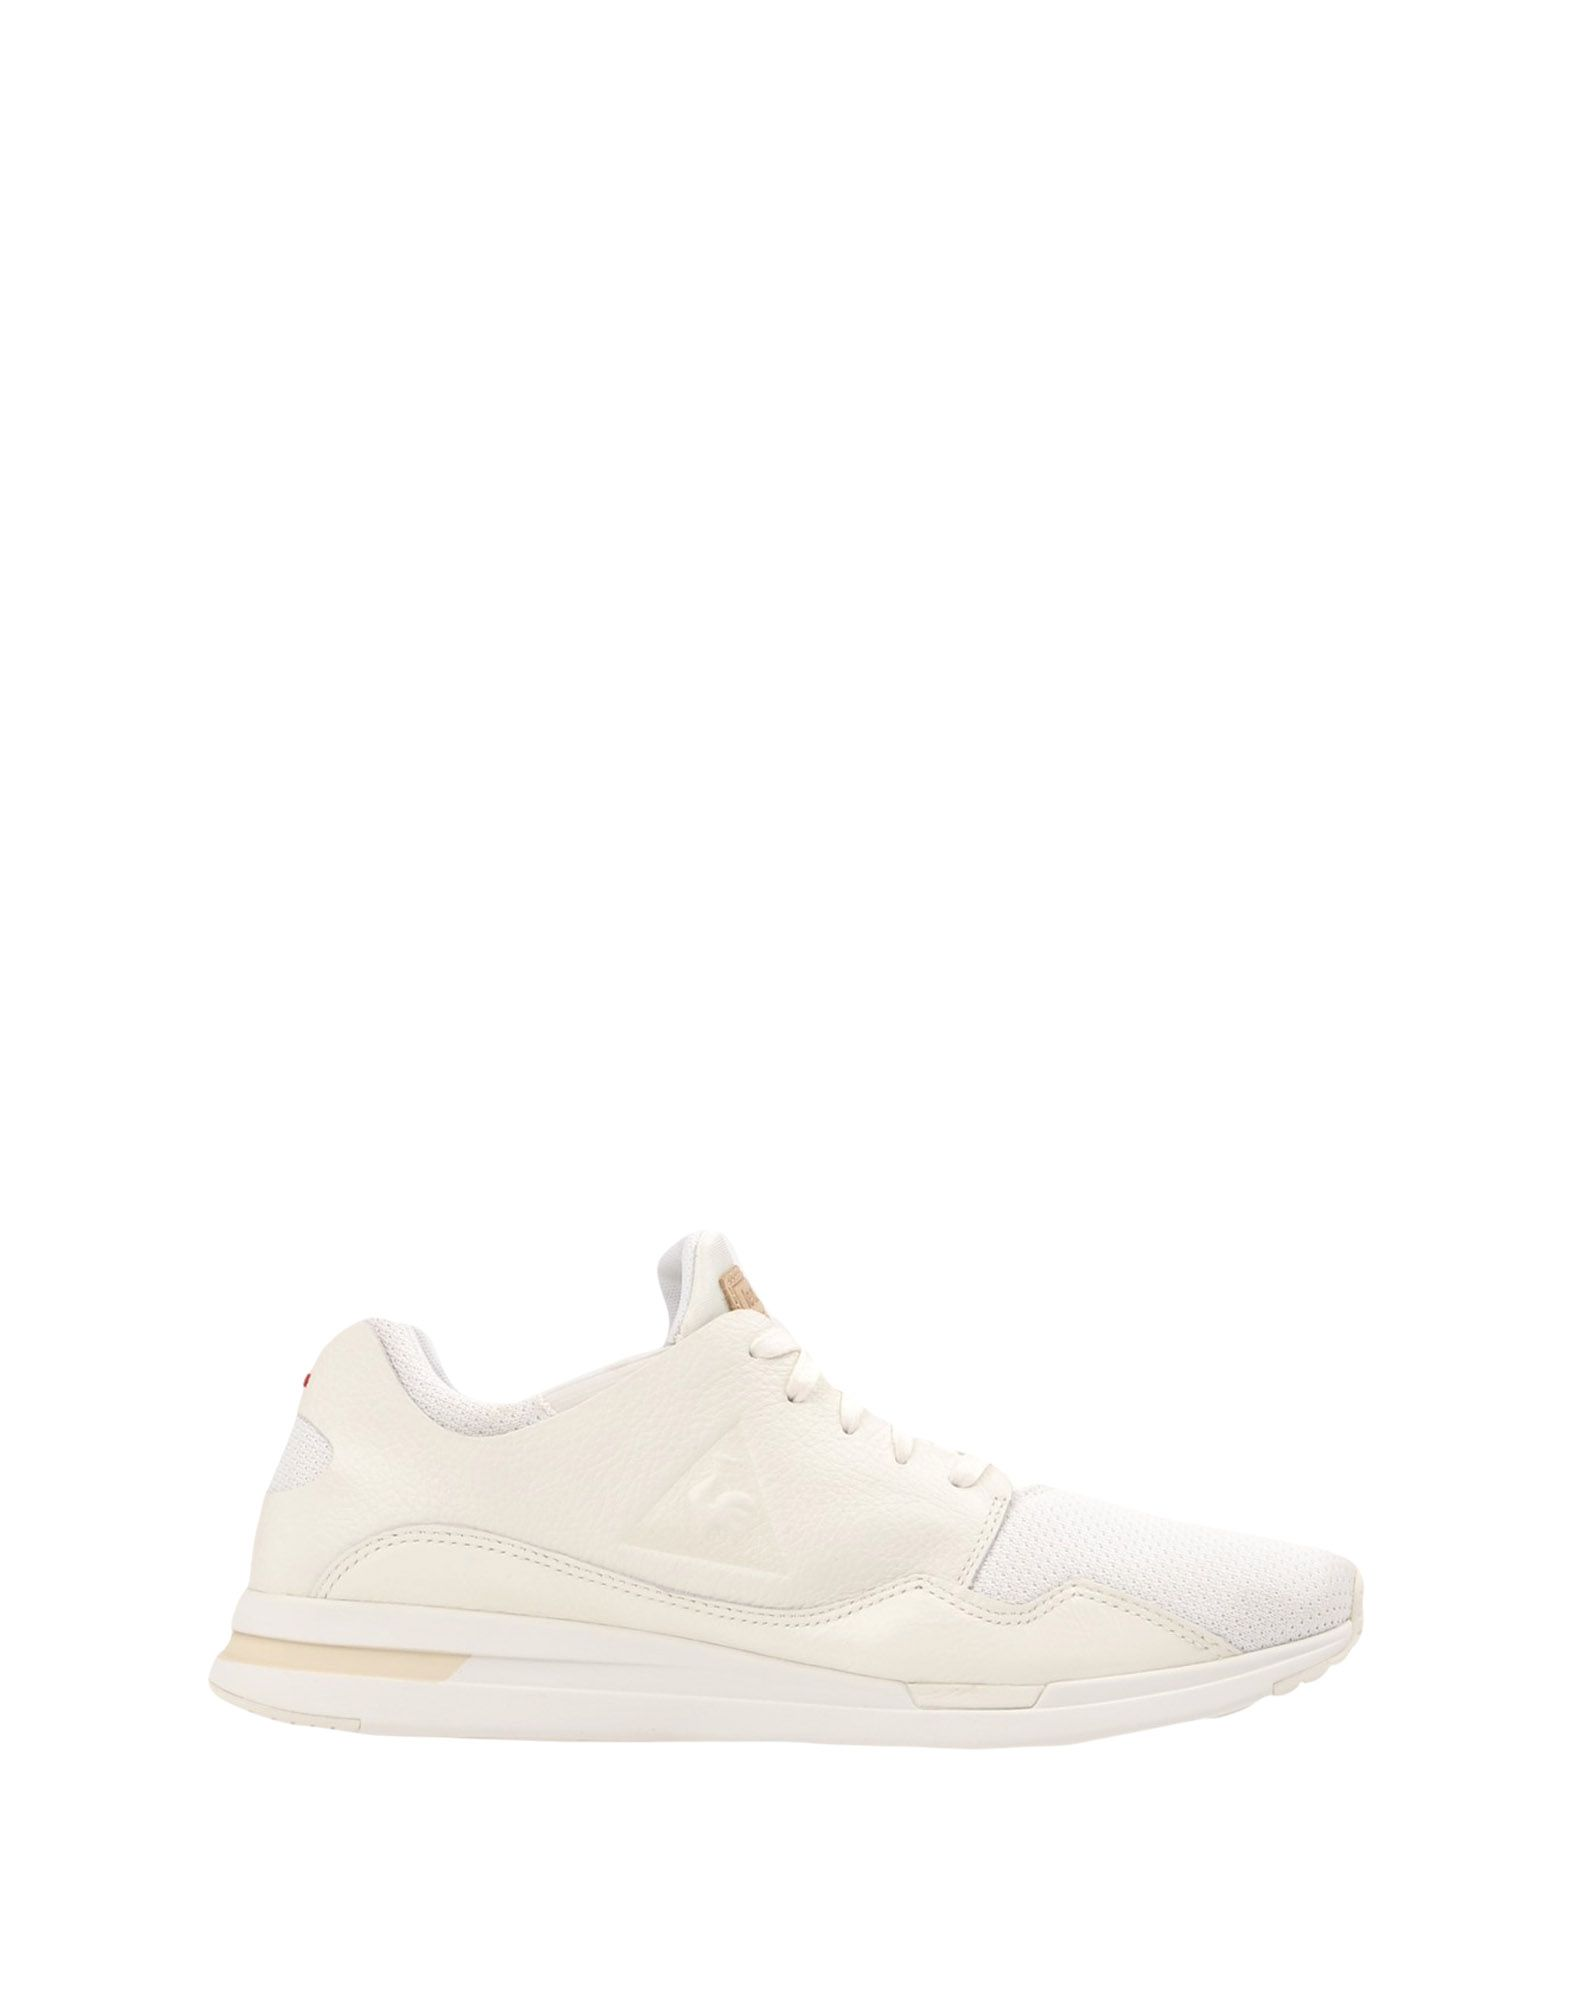 Sneakers Le Coq Sportif Lcs R Pure Leather/Mesh - Homme - Sneakers Le Coq Sportif sur